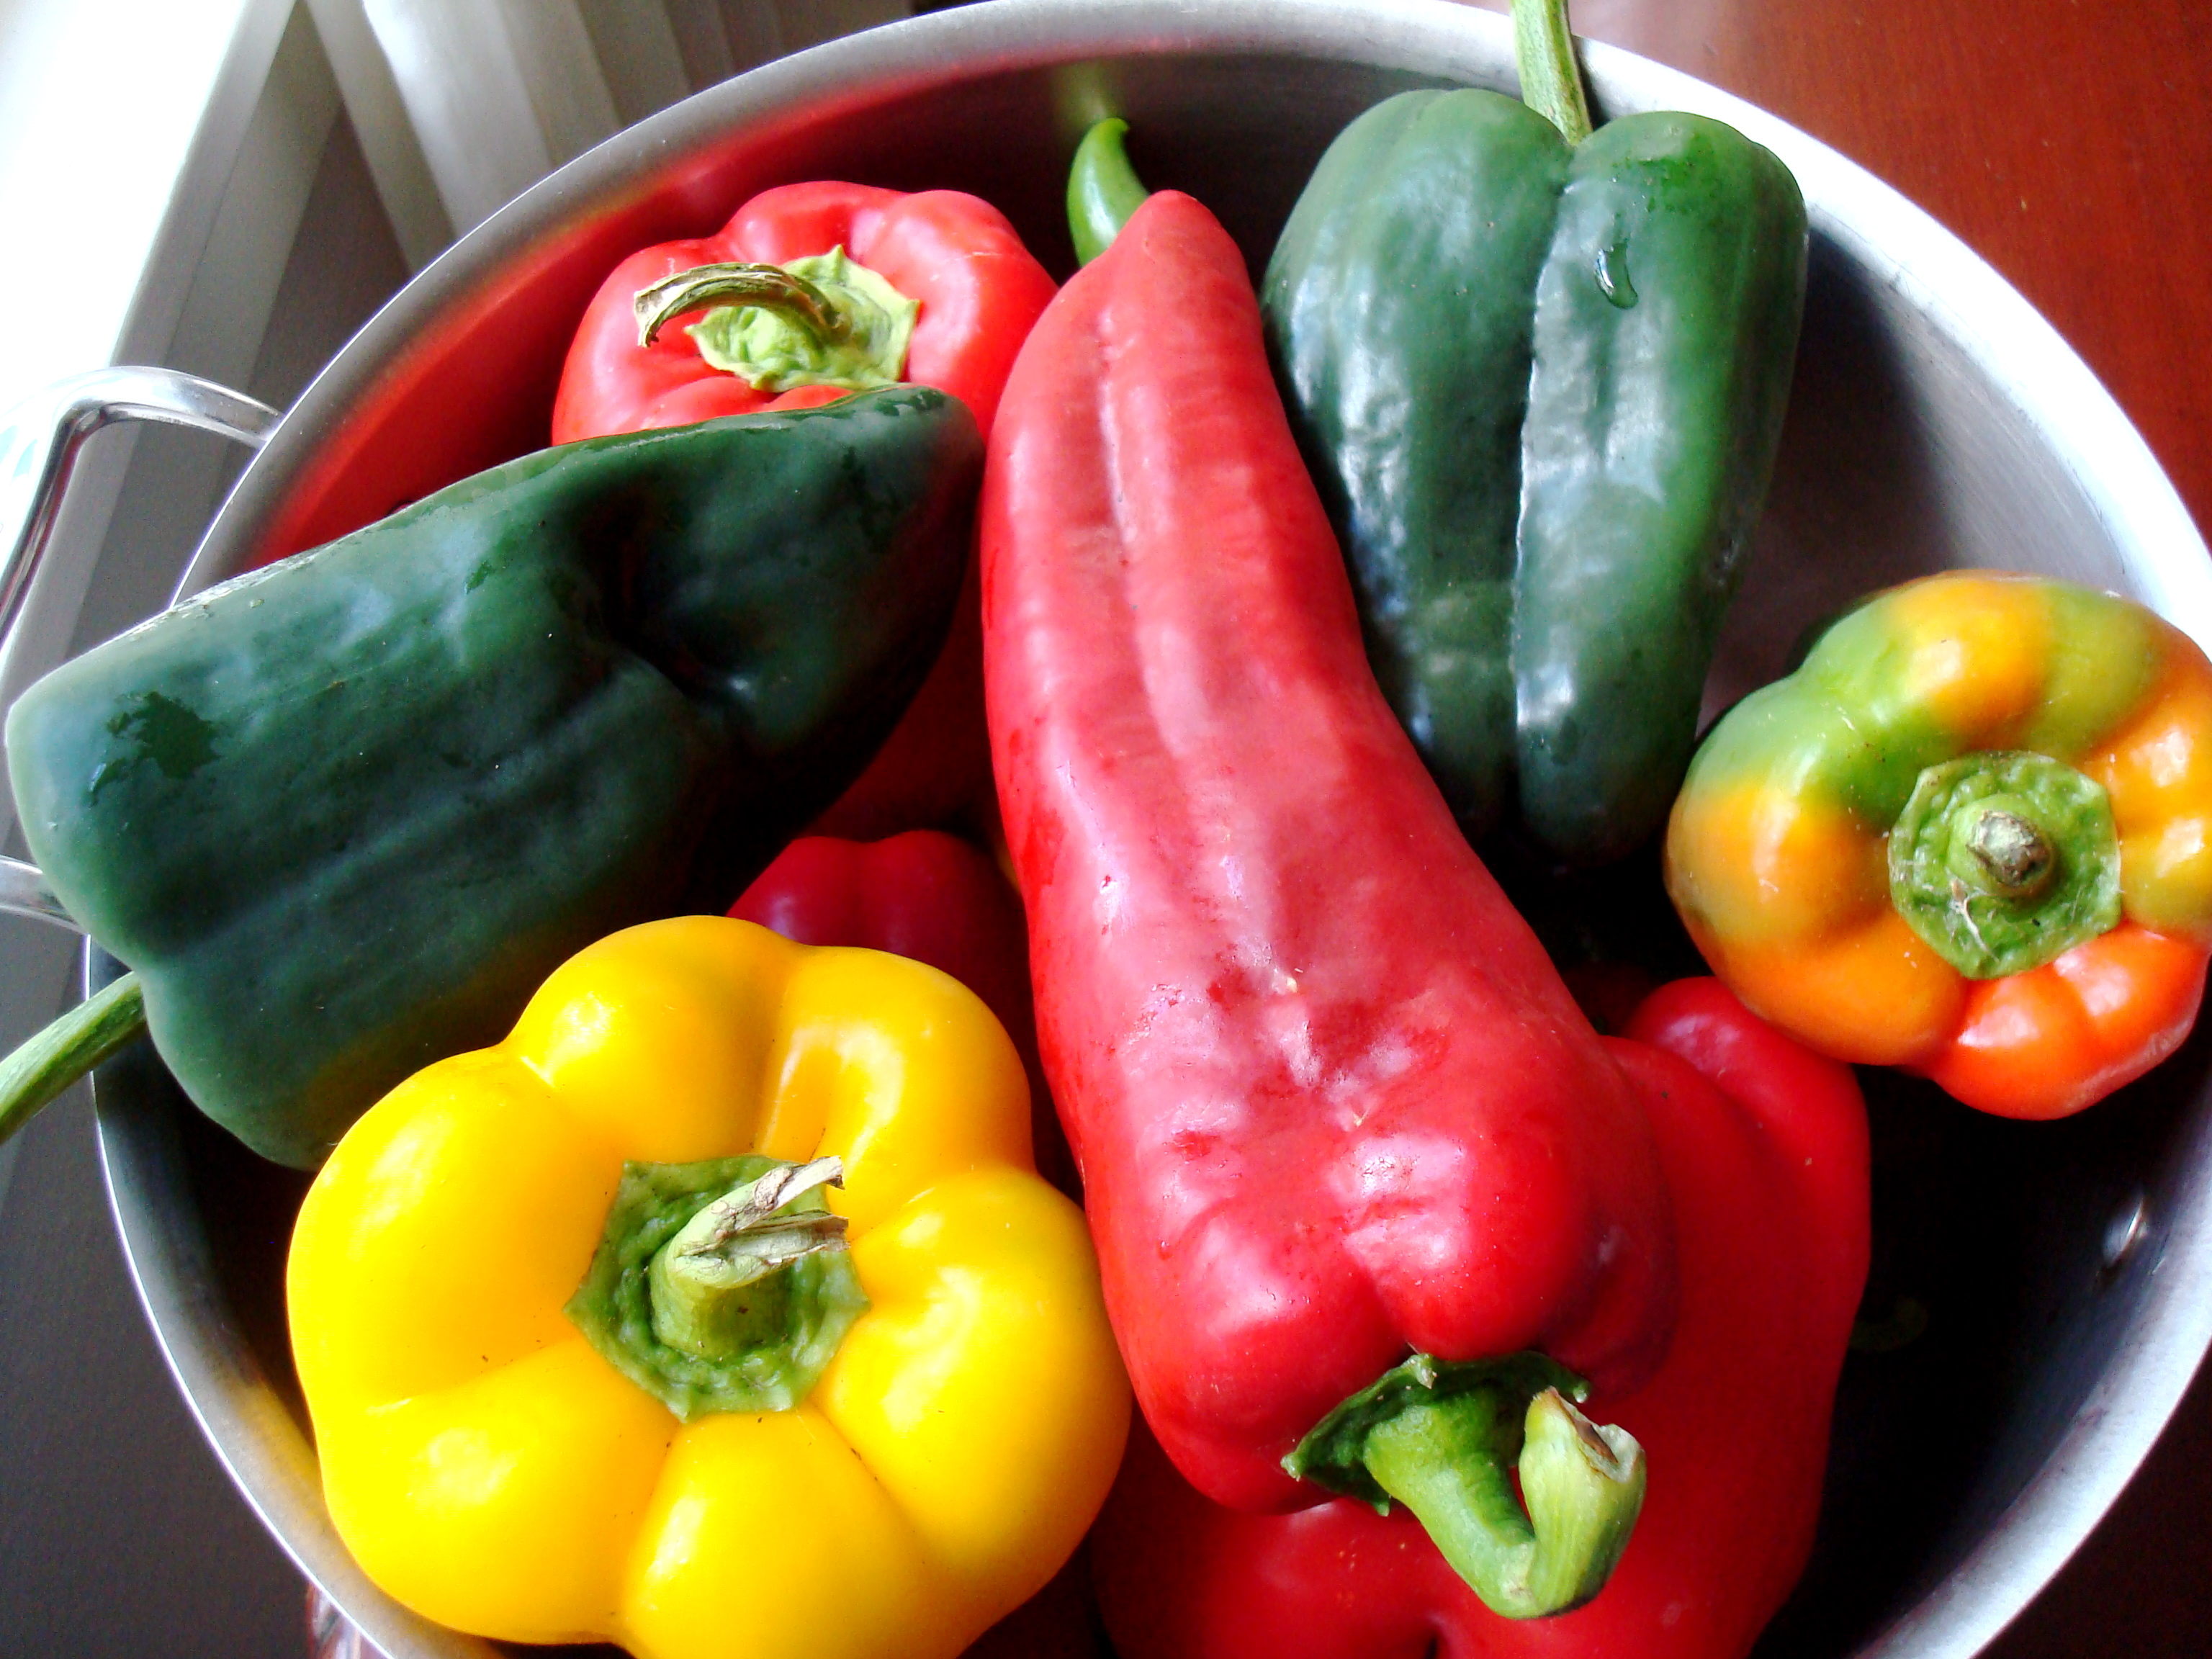 Local peppers galore: polbanos, anaheims, sweet Italian reds.